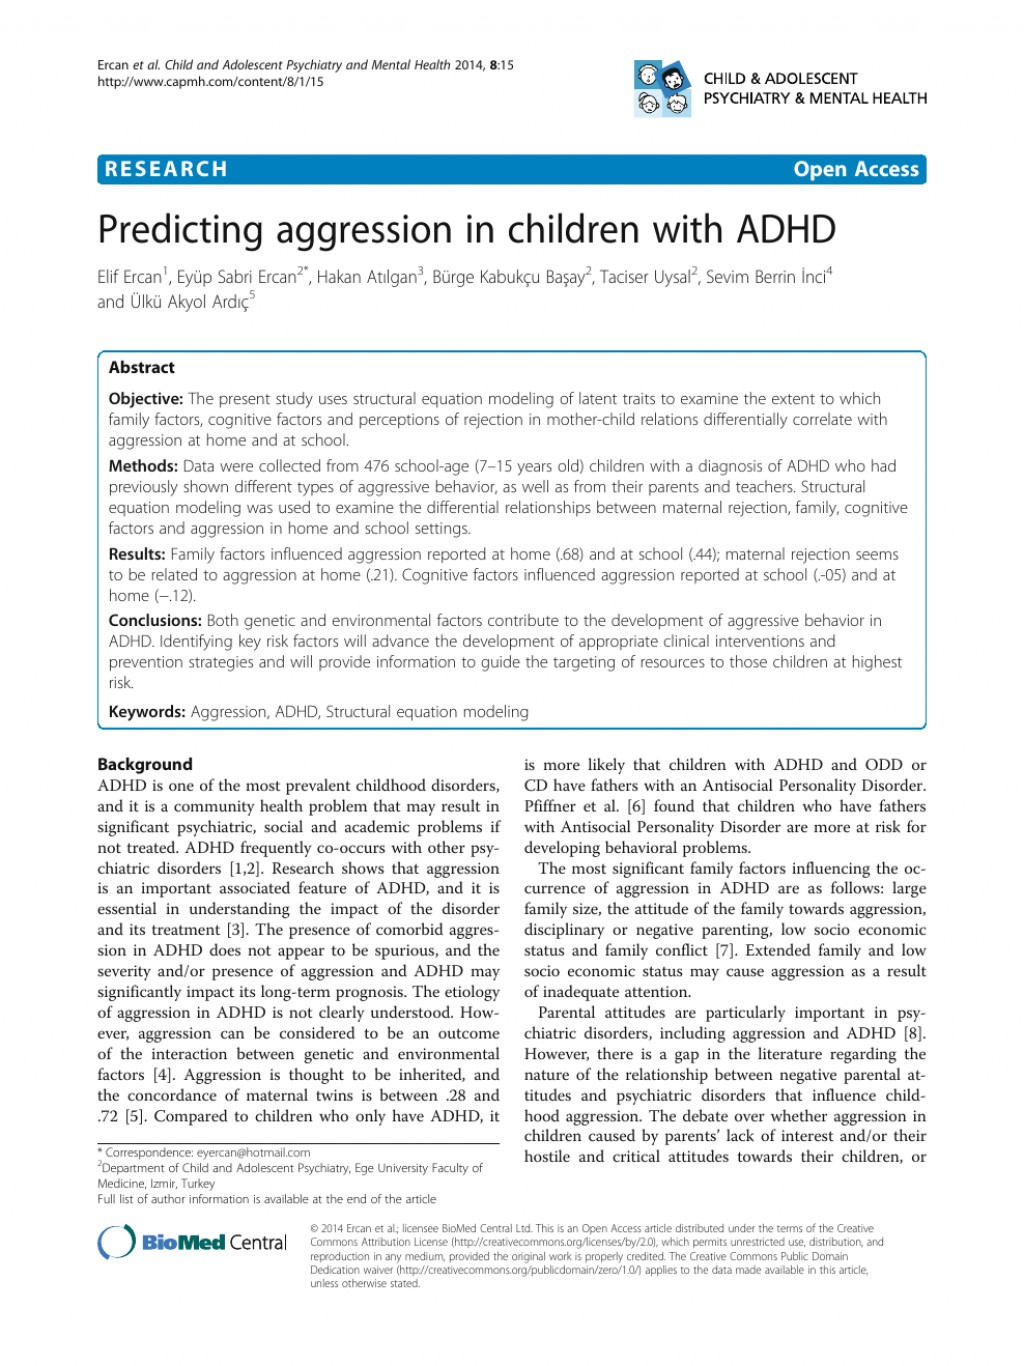 003 Adhd Research Remarkable Paper Ideas Thesis Statement Large